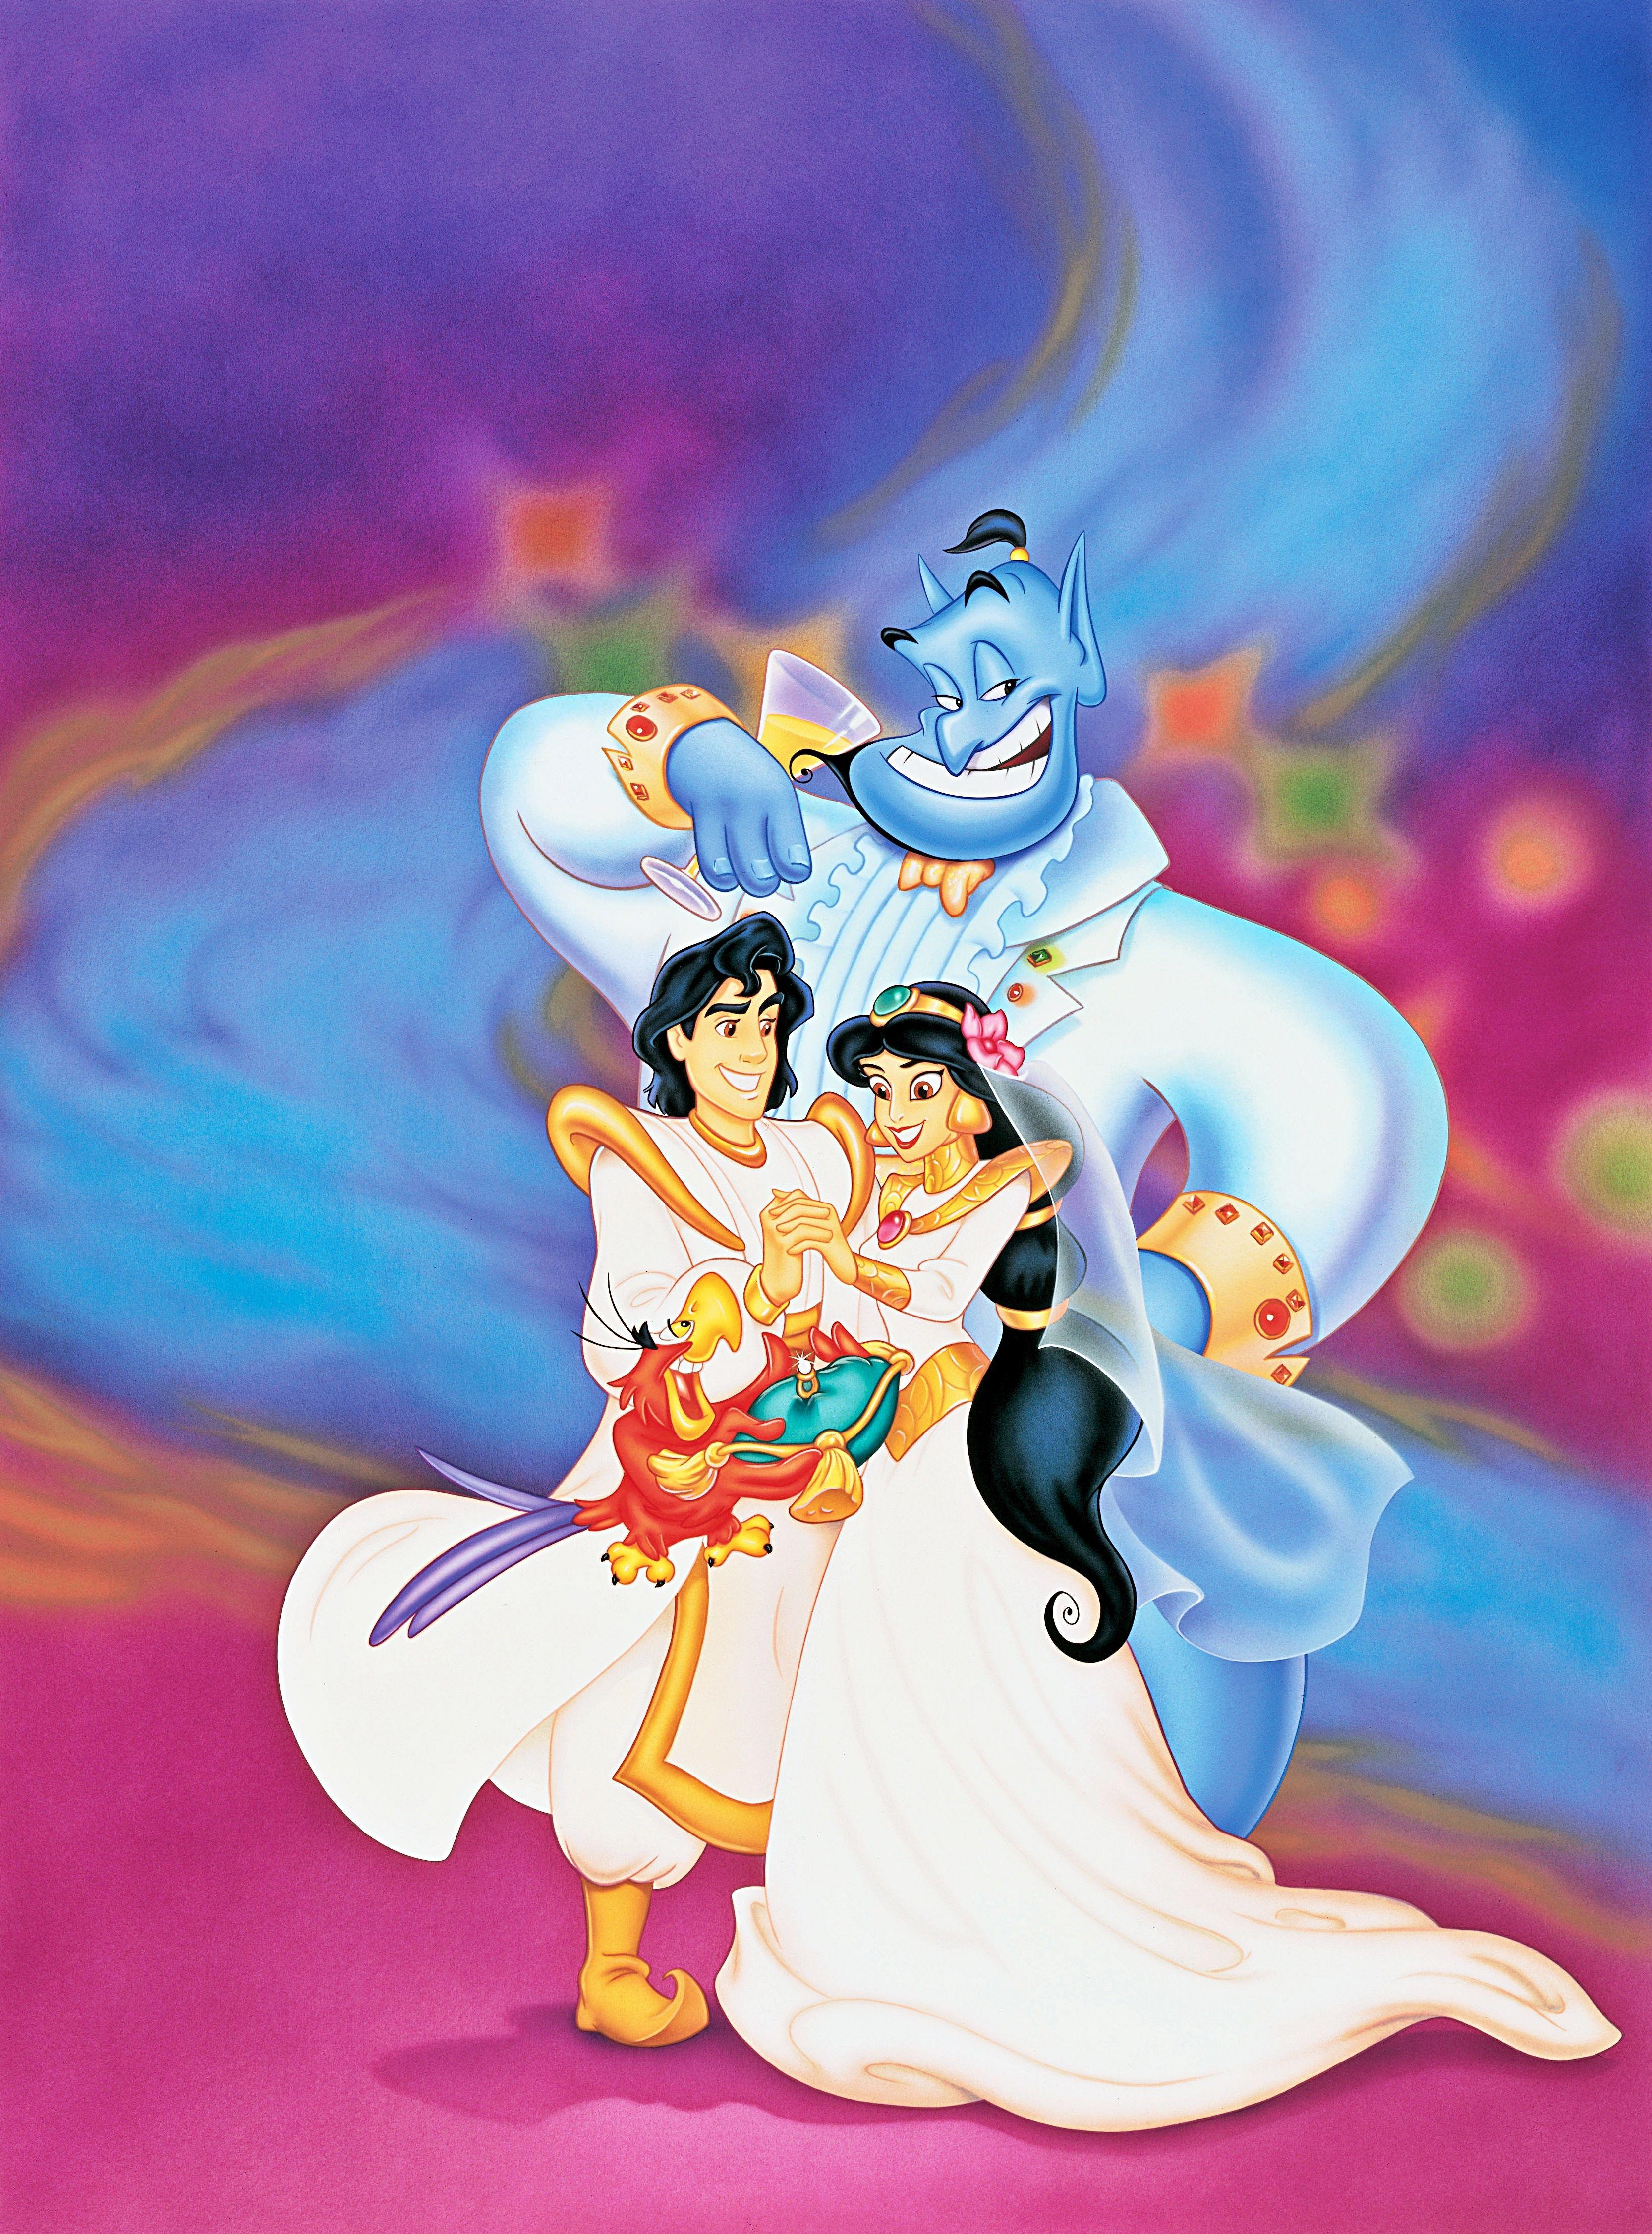 Disney Aladdin Wallpaper Aladdin Disney Wallpapers Wallpaper Cave